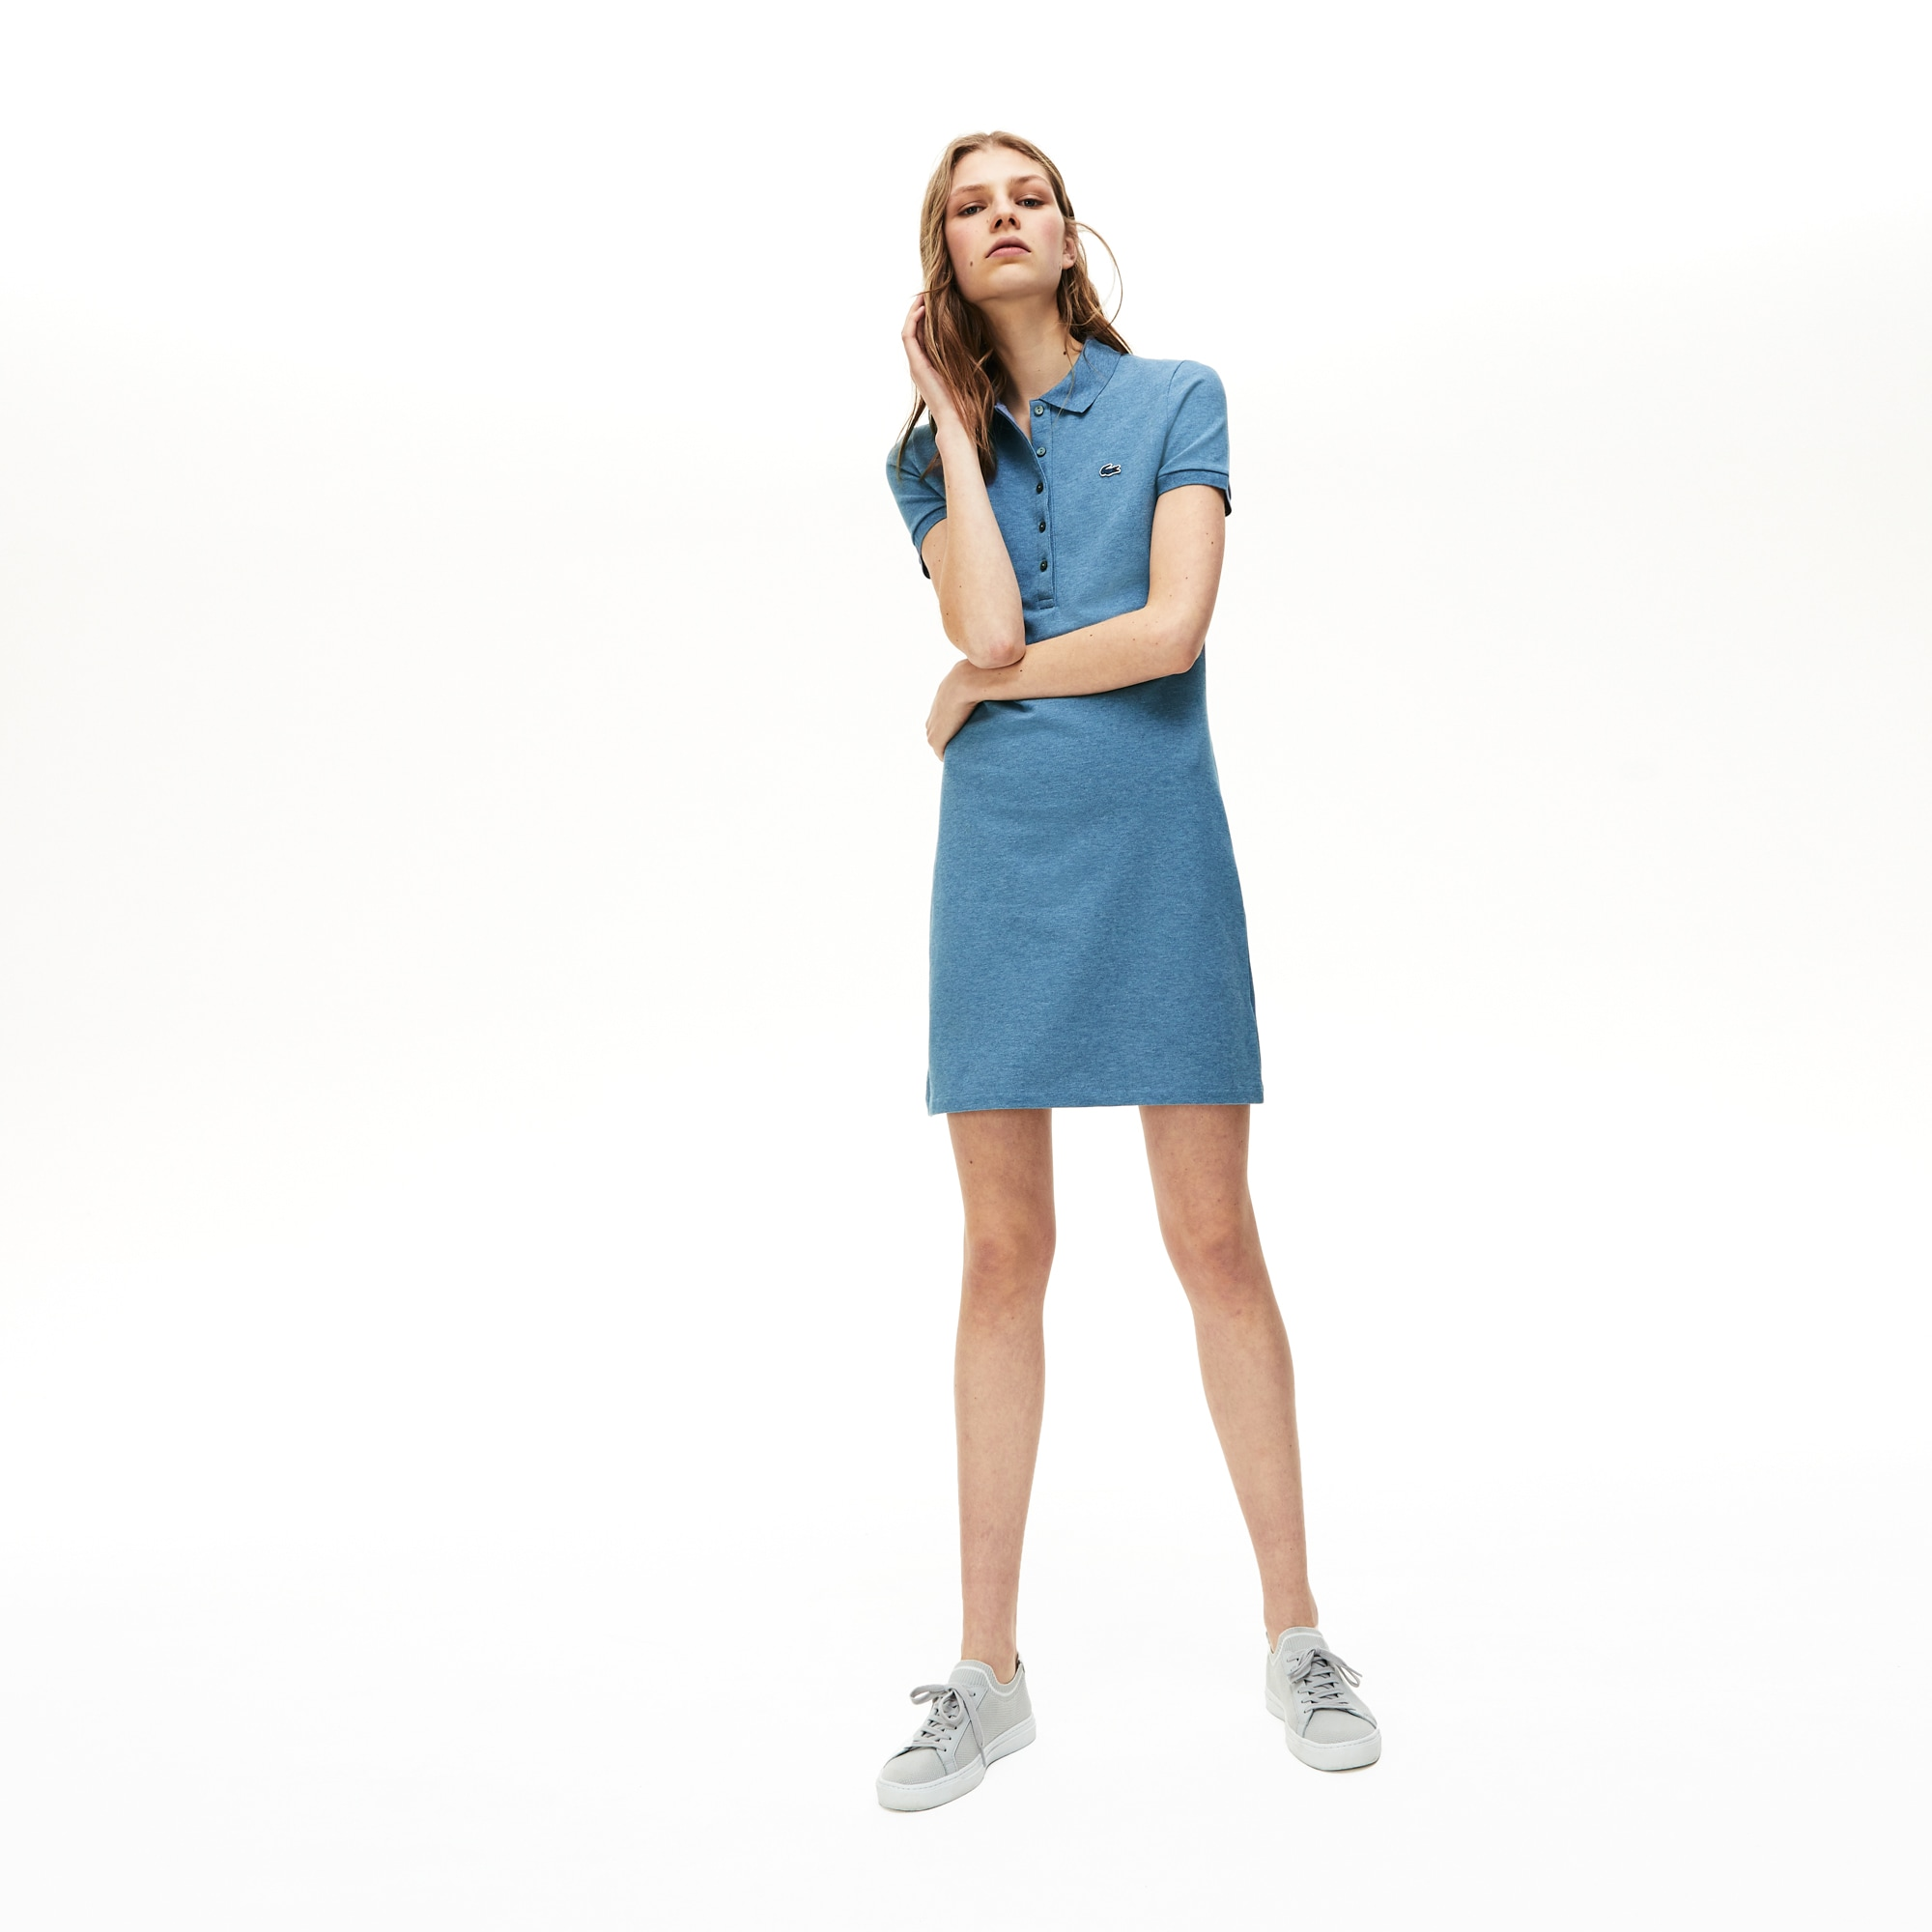 07a4922ef58eba All Dresses | Dresses & Skirts | LACOSTE